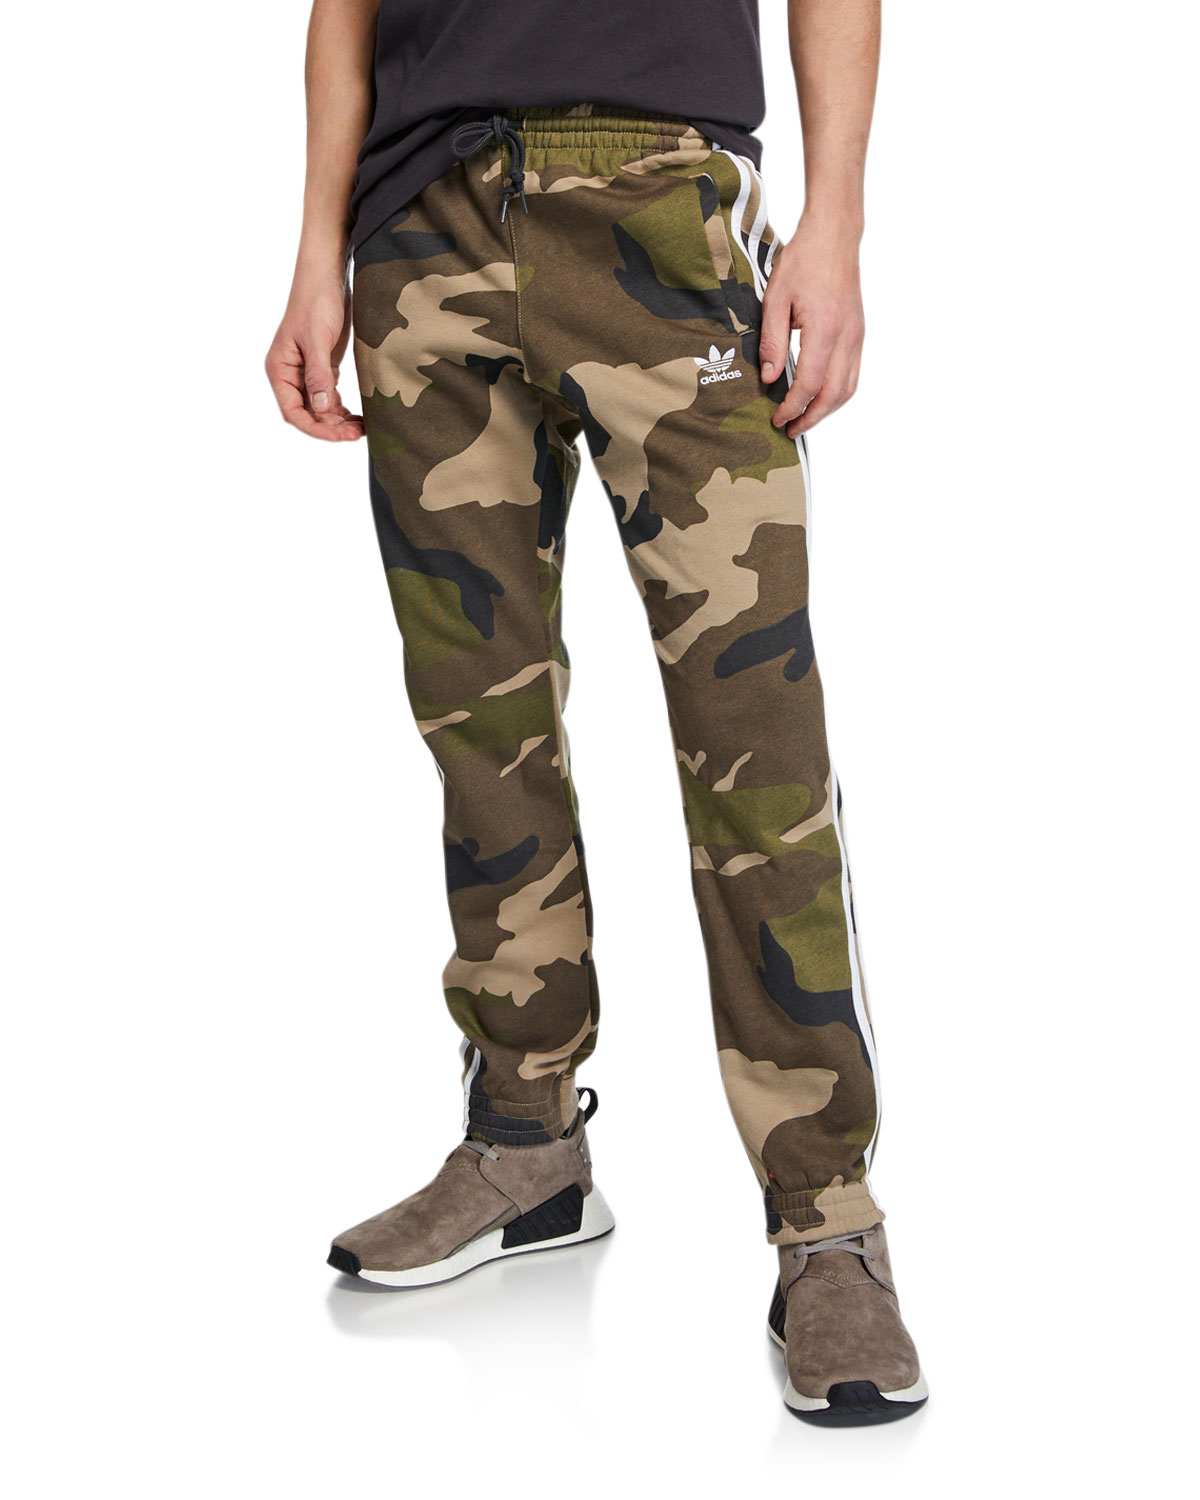 Adidas Men's Camo French Terry Pants